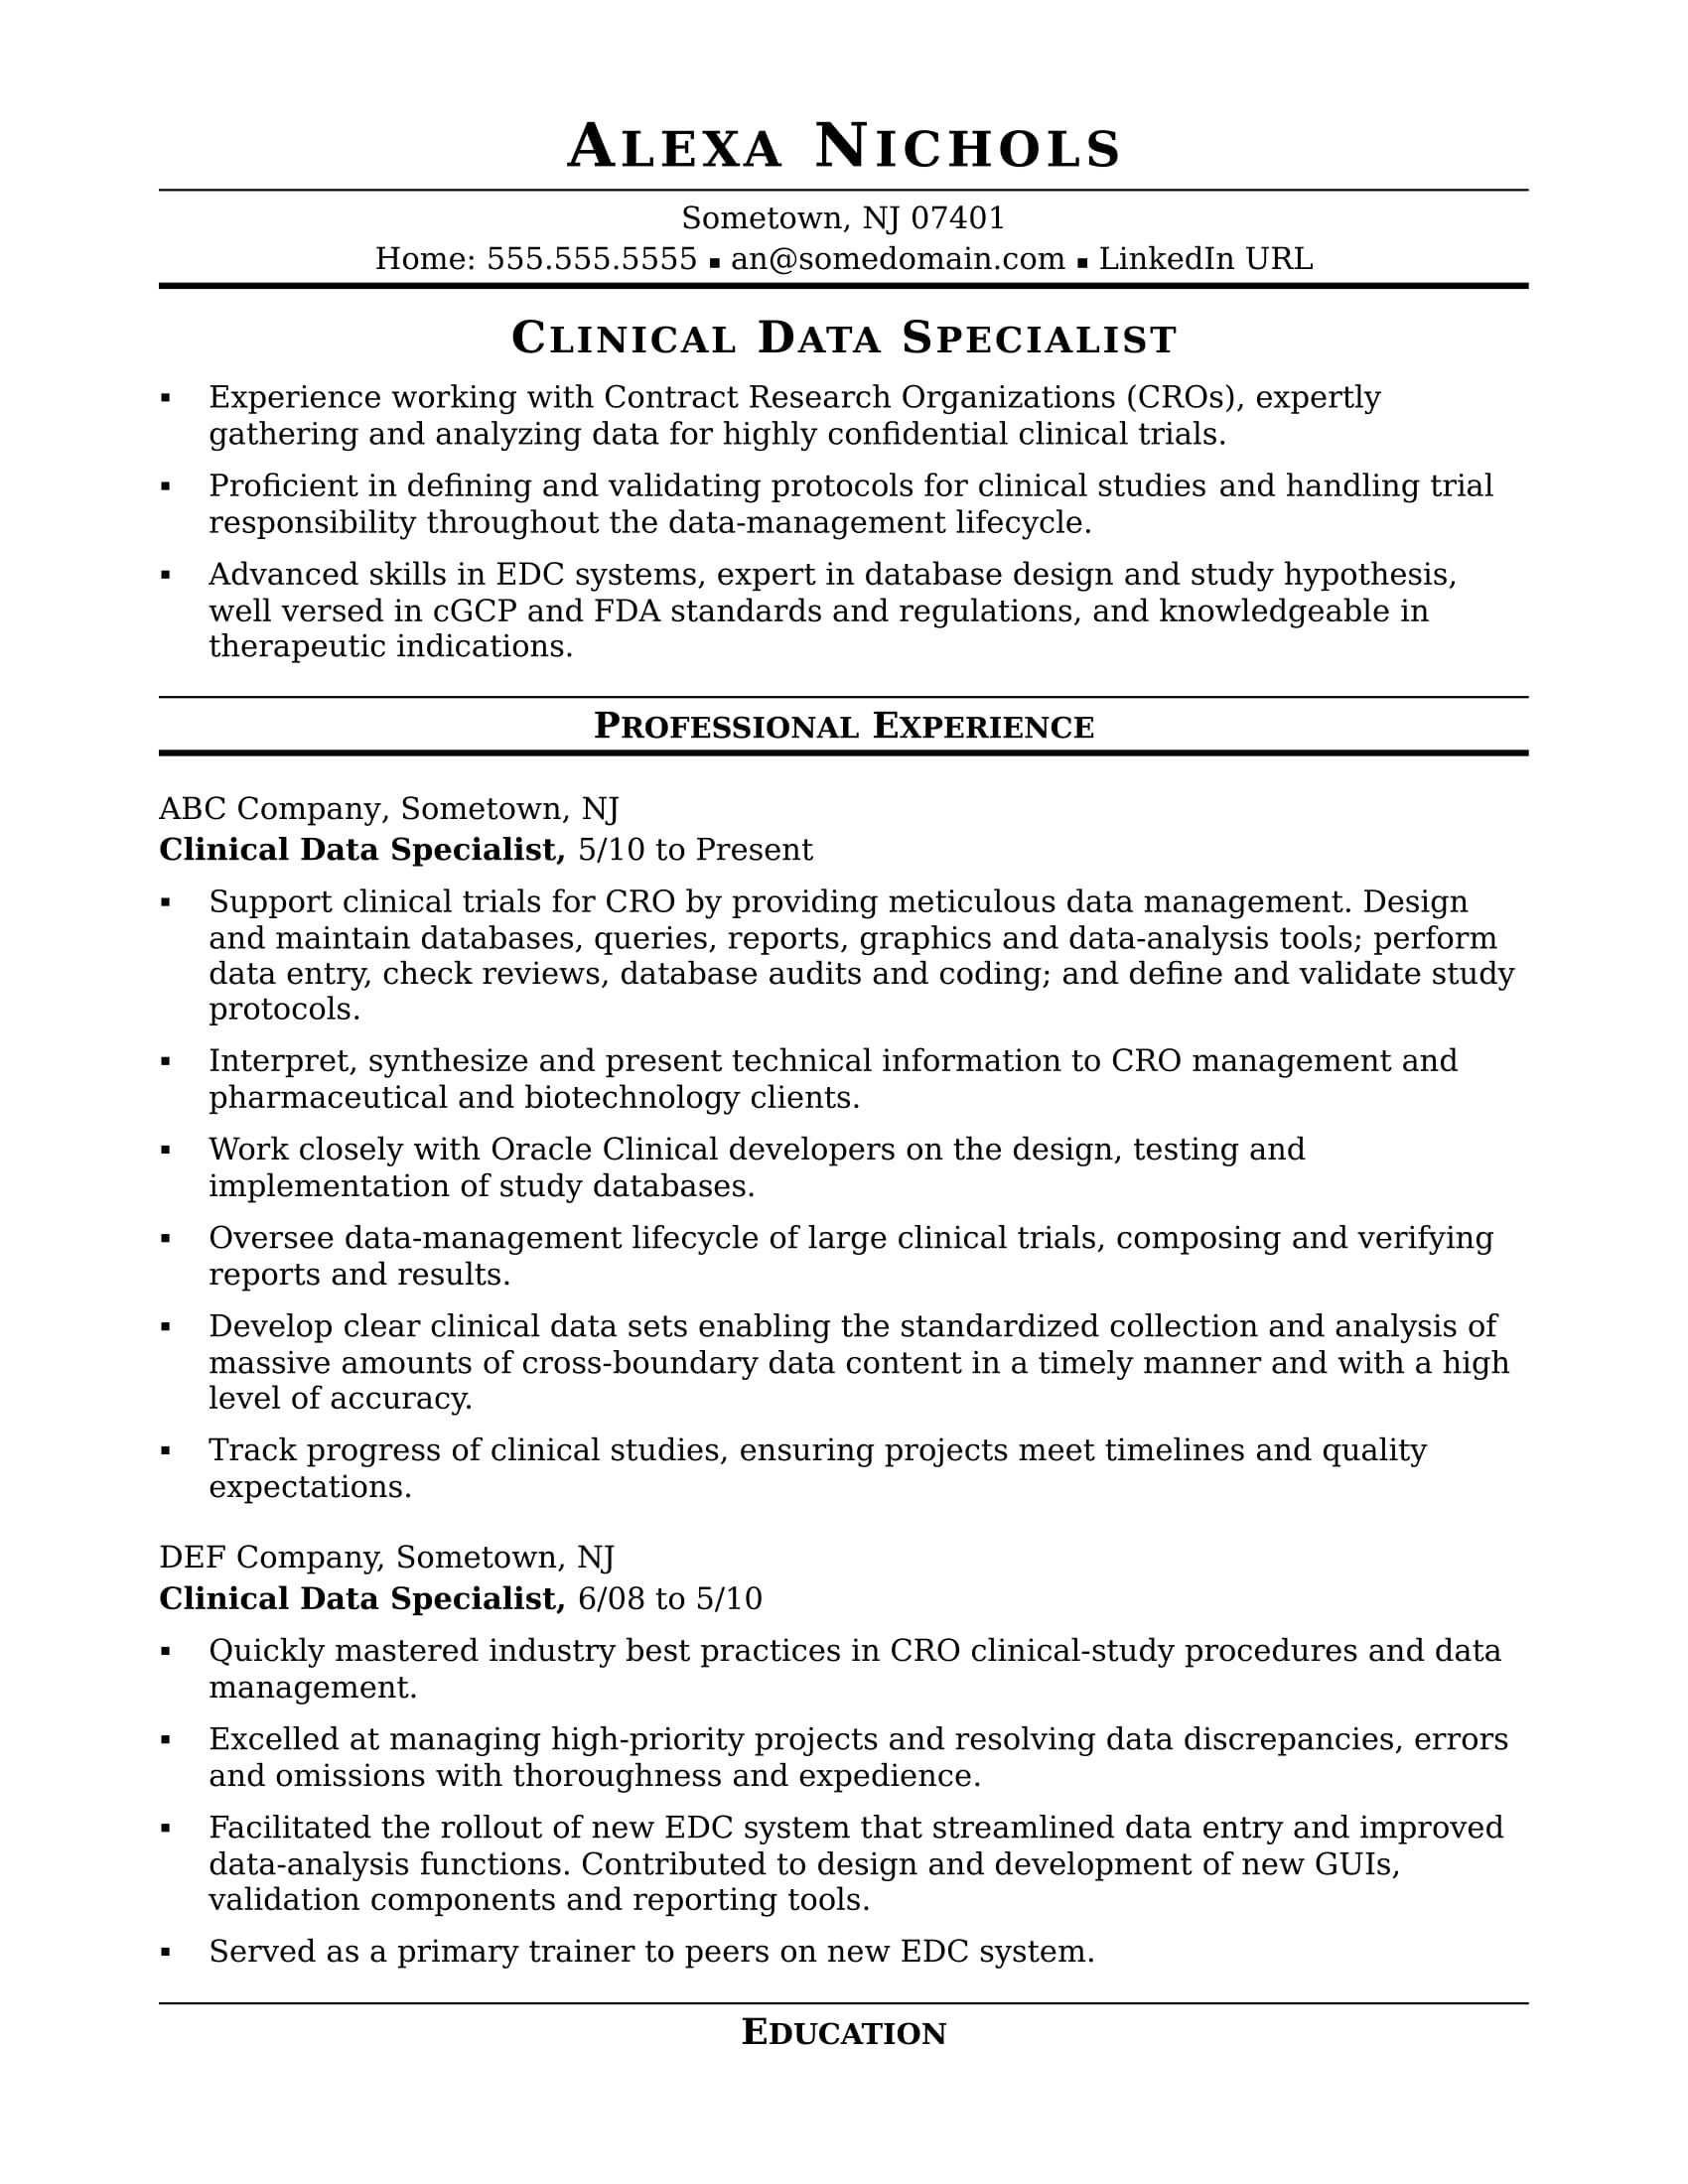 Clinical Data Specialist Resume Sample Monster